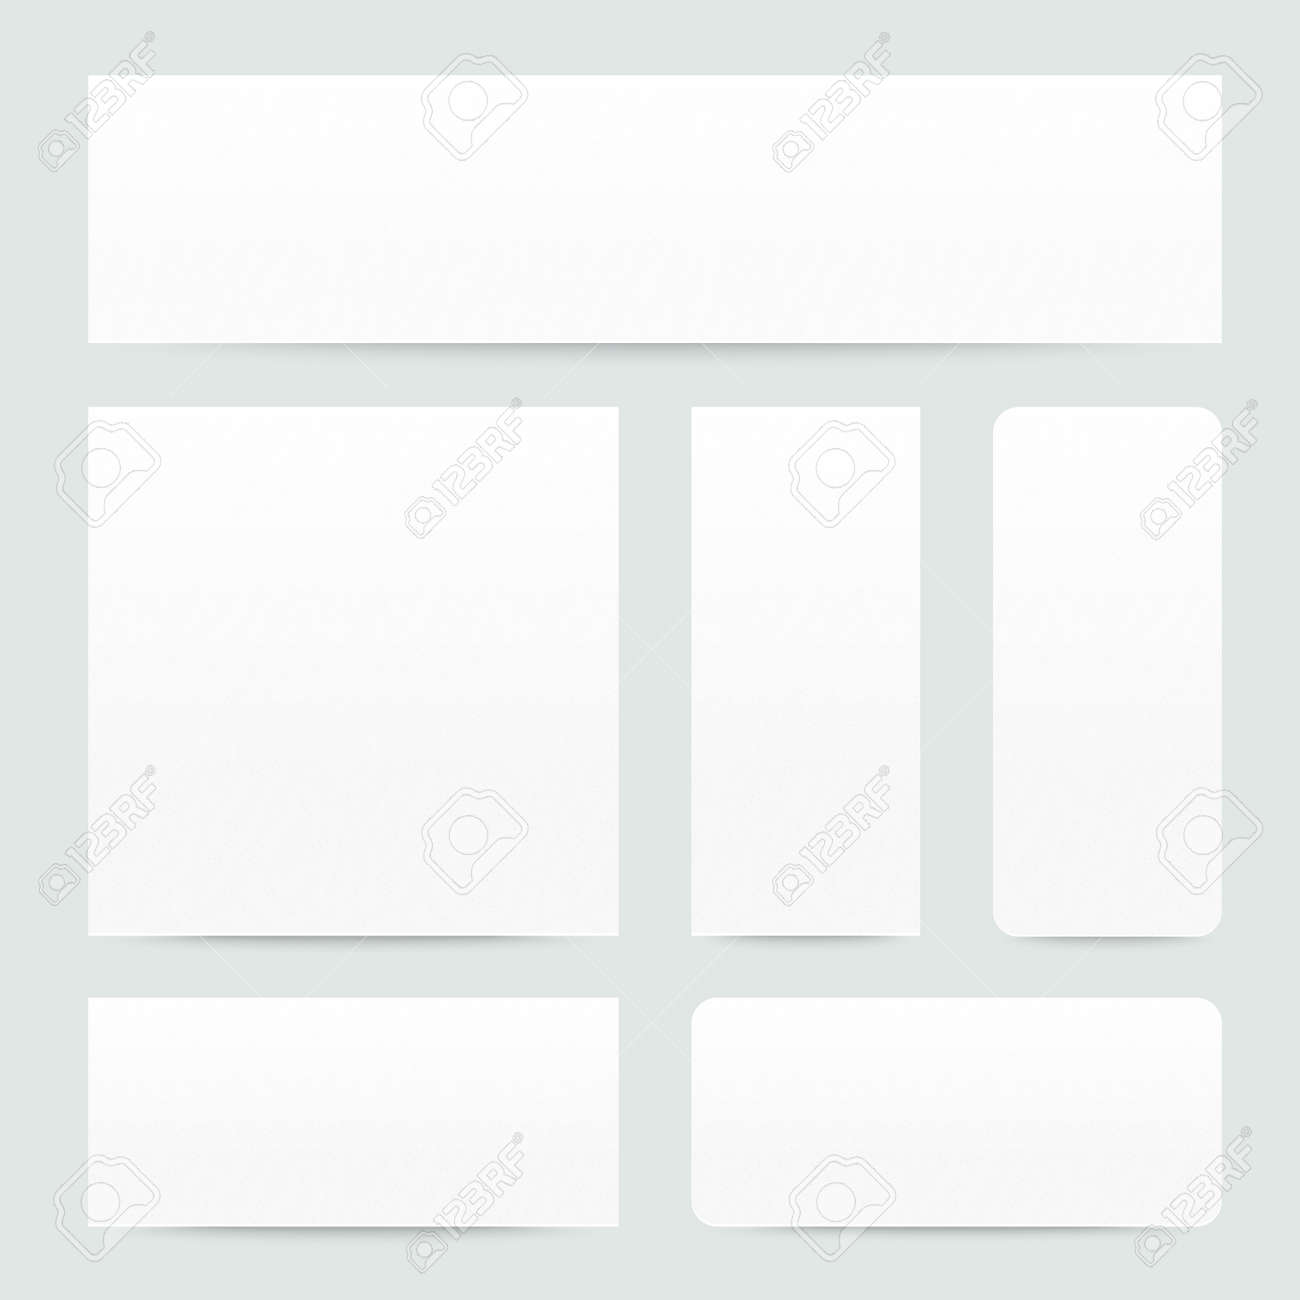 Different paper banners with shadows - 14956283